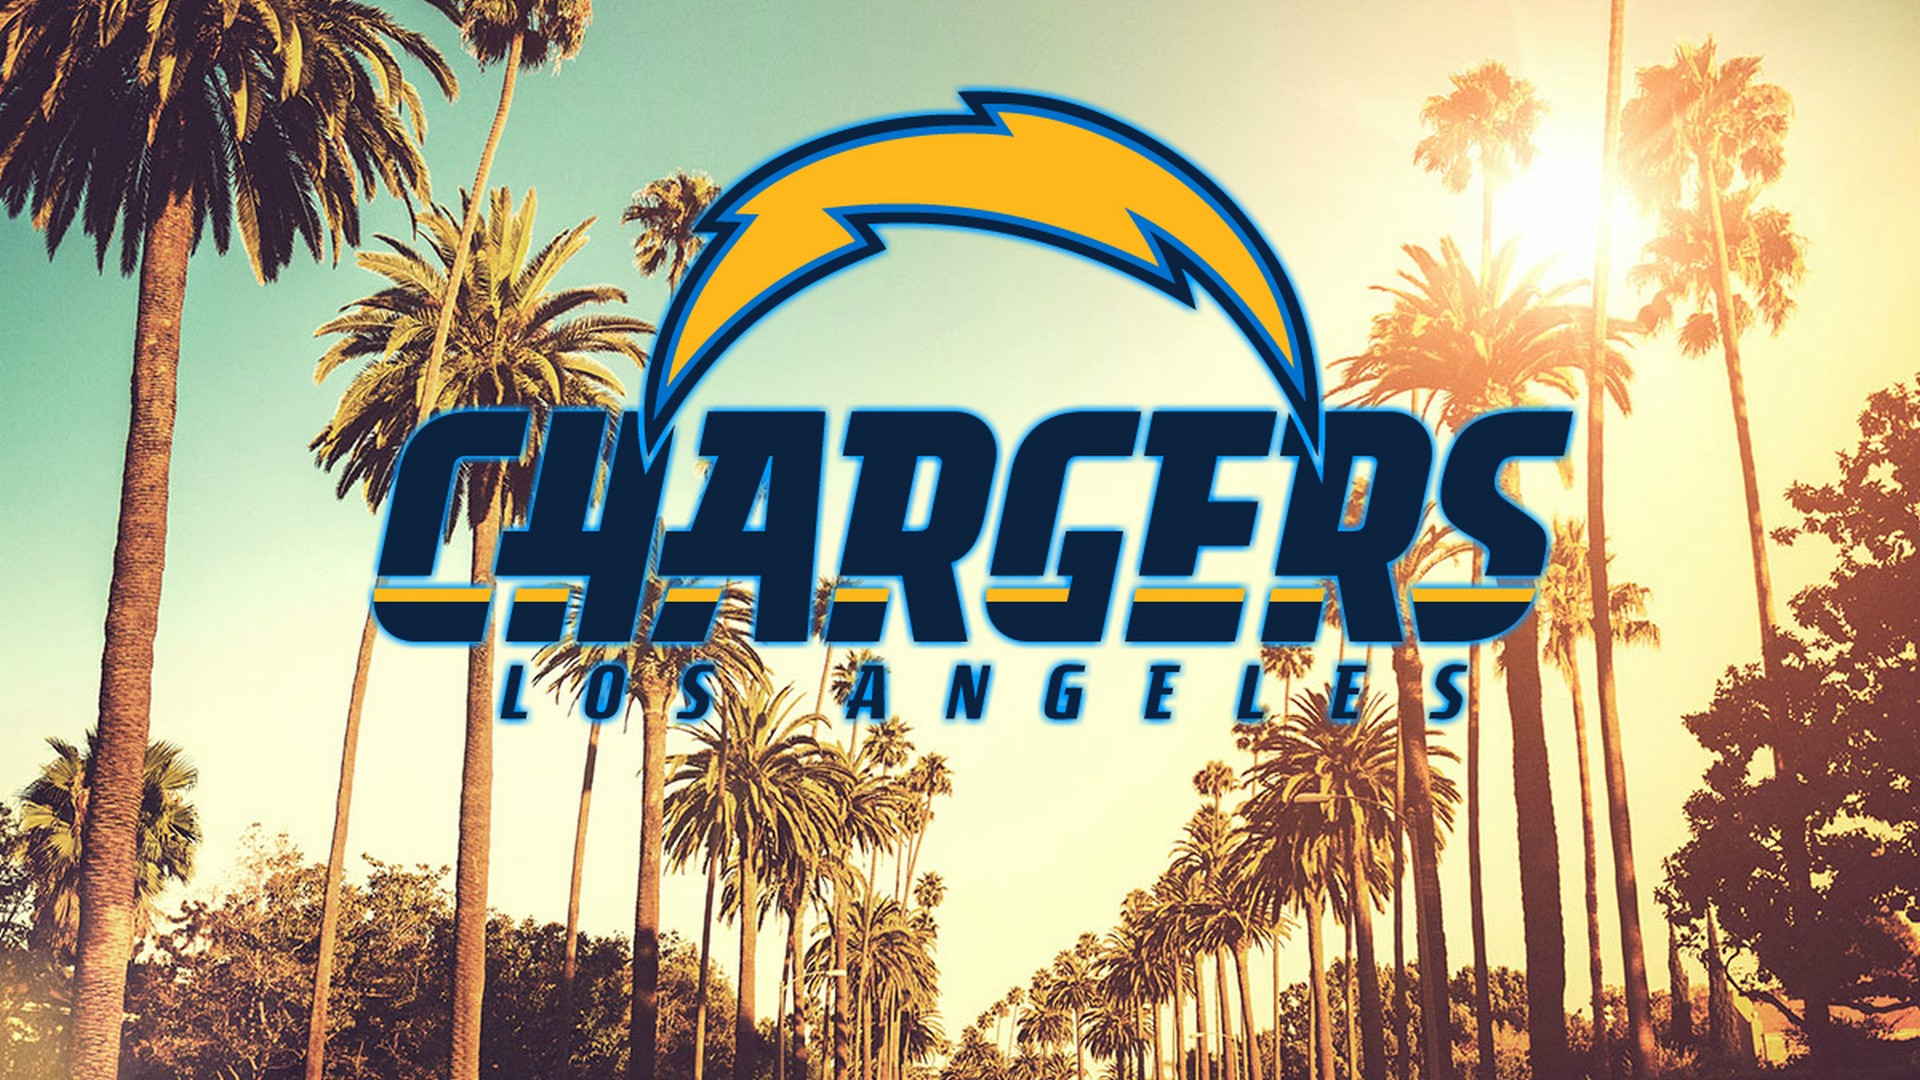 Wallpapers Hd Los Angeles Chargers With Resolution - Hollywood California Palm Trees , HD Wallpaper & Backgrounds